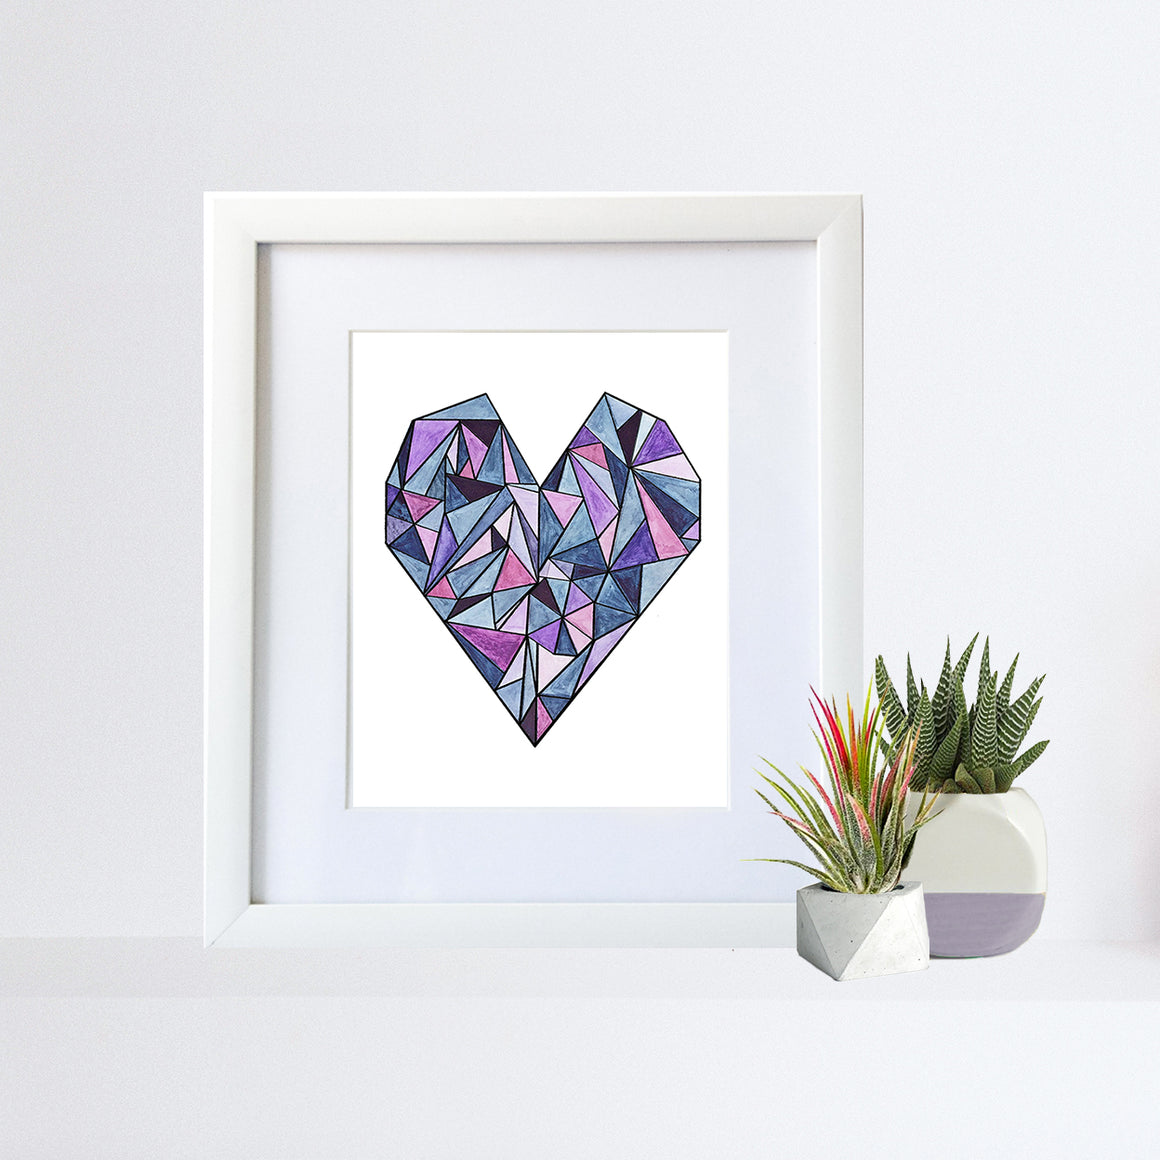 Framed Geometric Heart 8x10 Art Print by Tanya Madoff